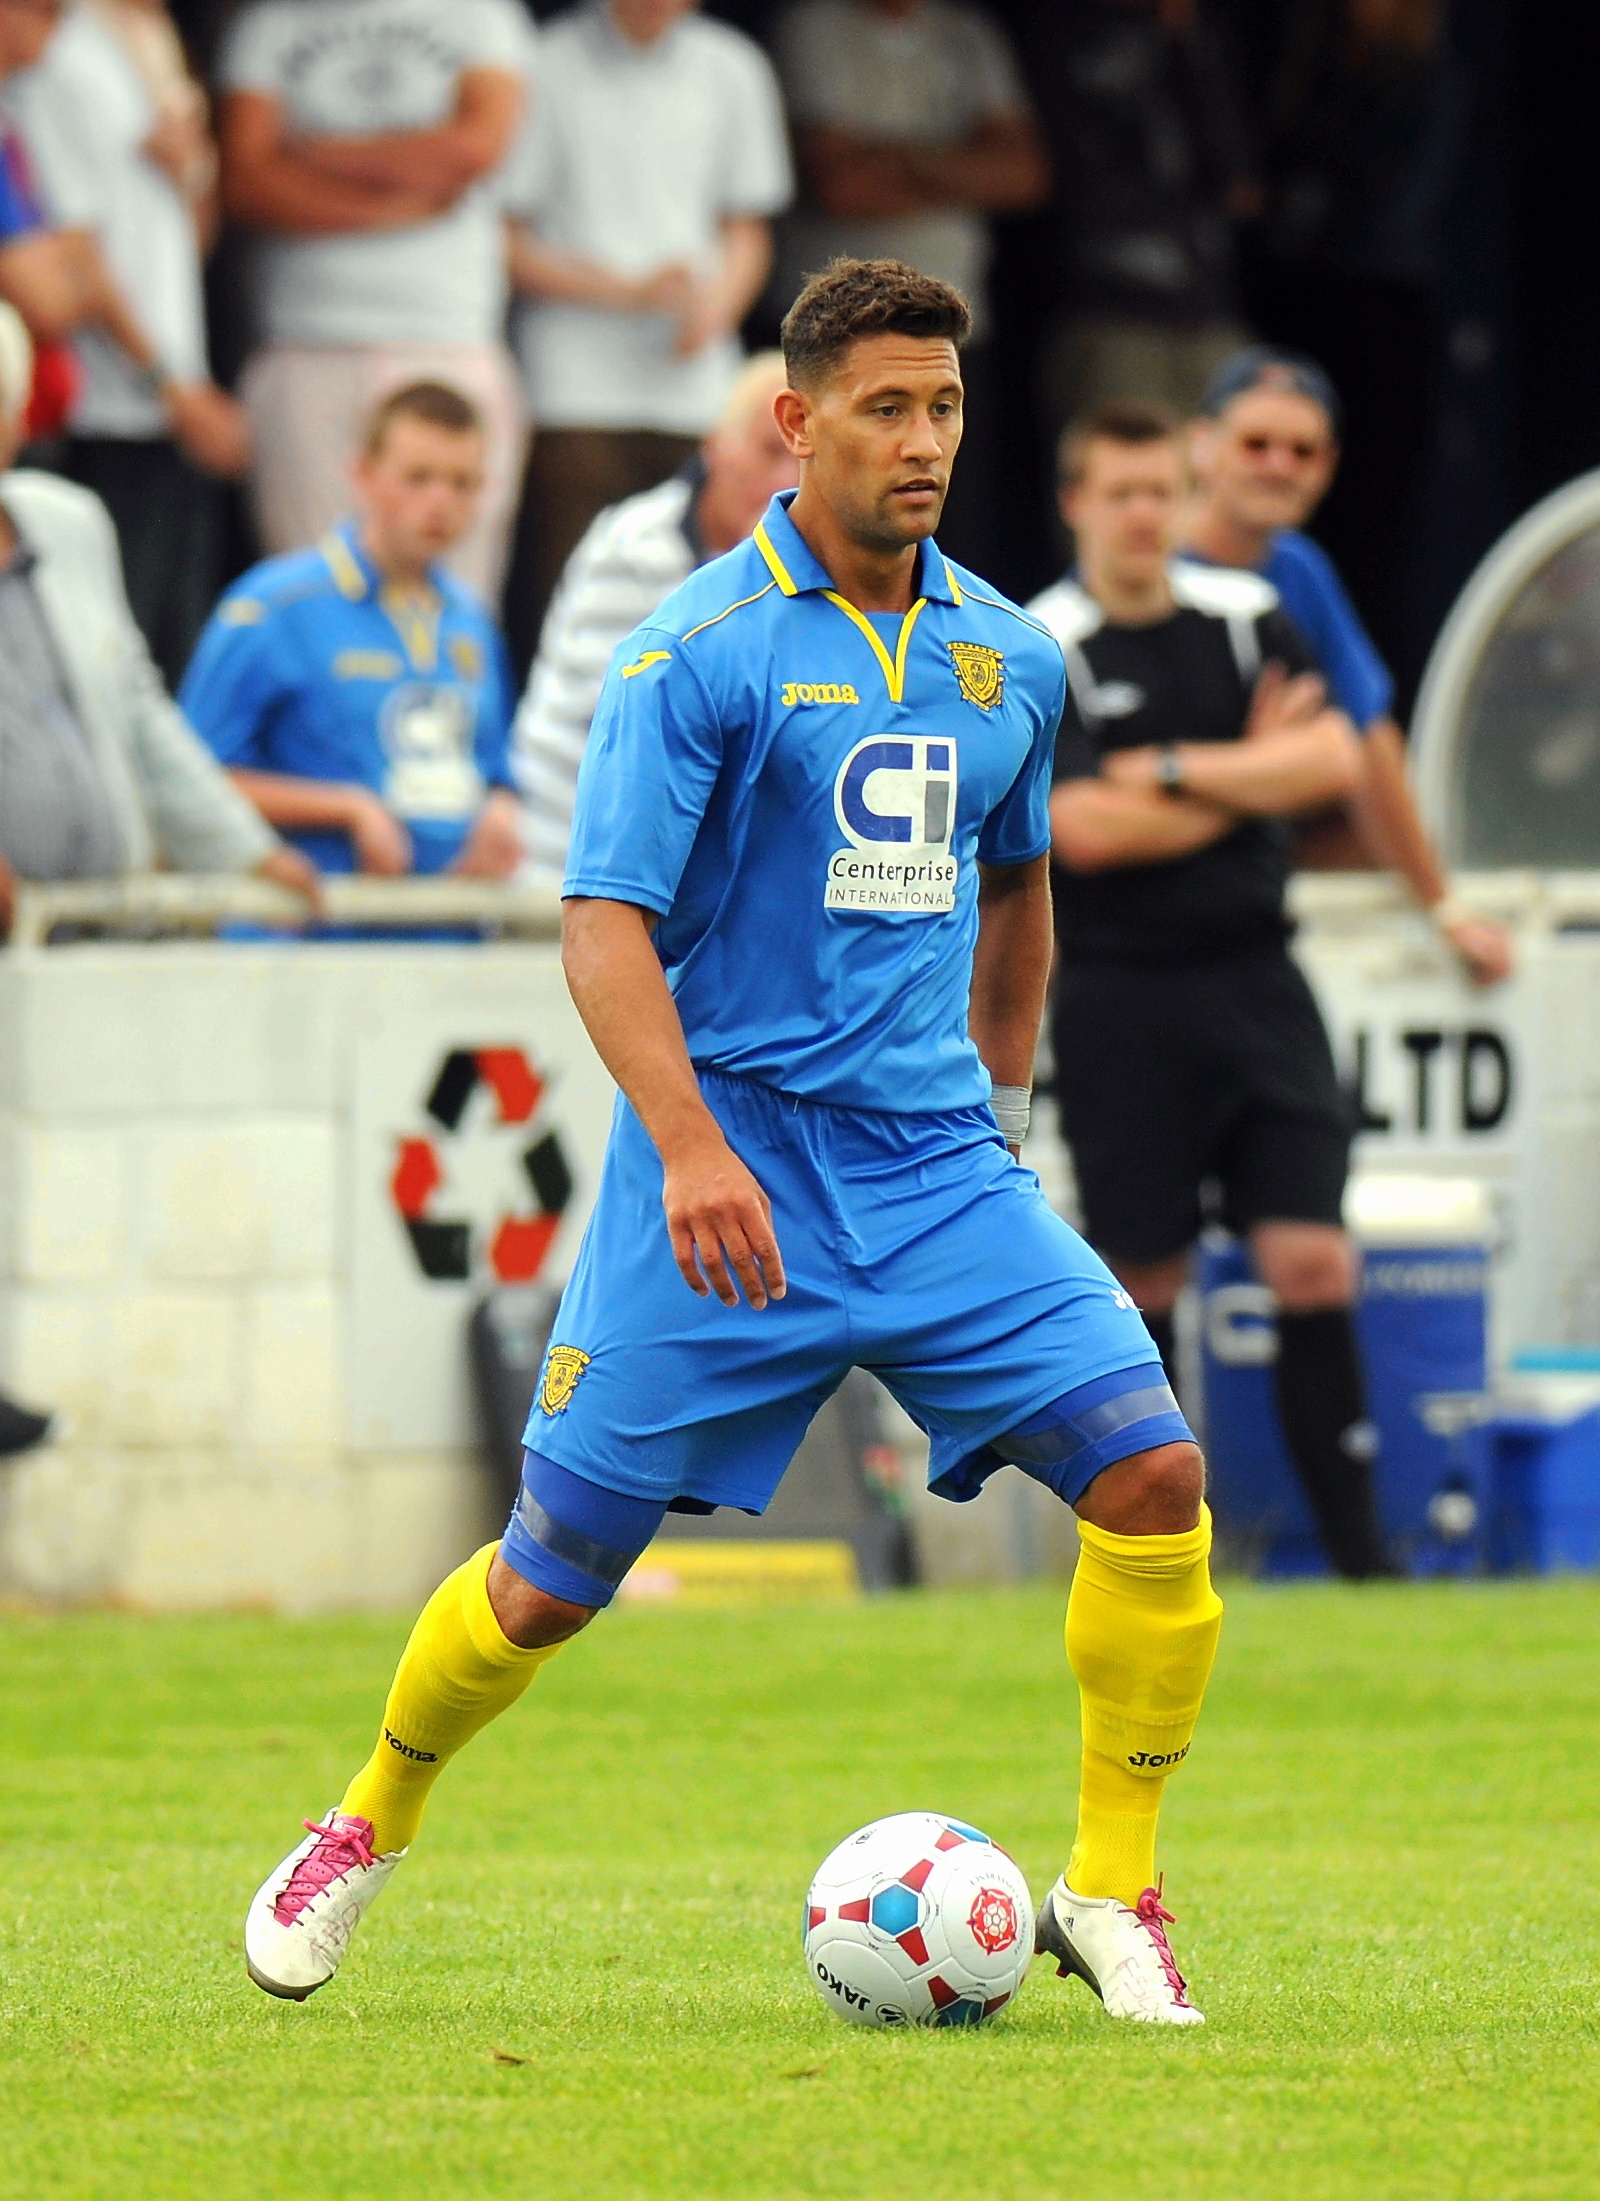 Nathan Smart's fine strike earned Basingstoke Town three vital points in Somerset on Saturday.